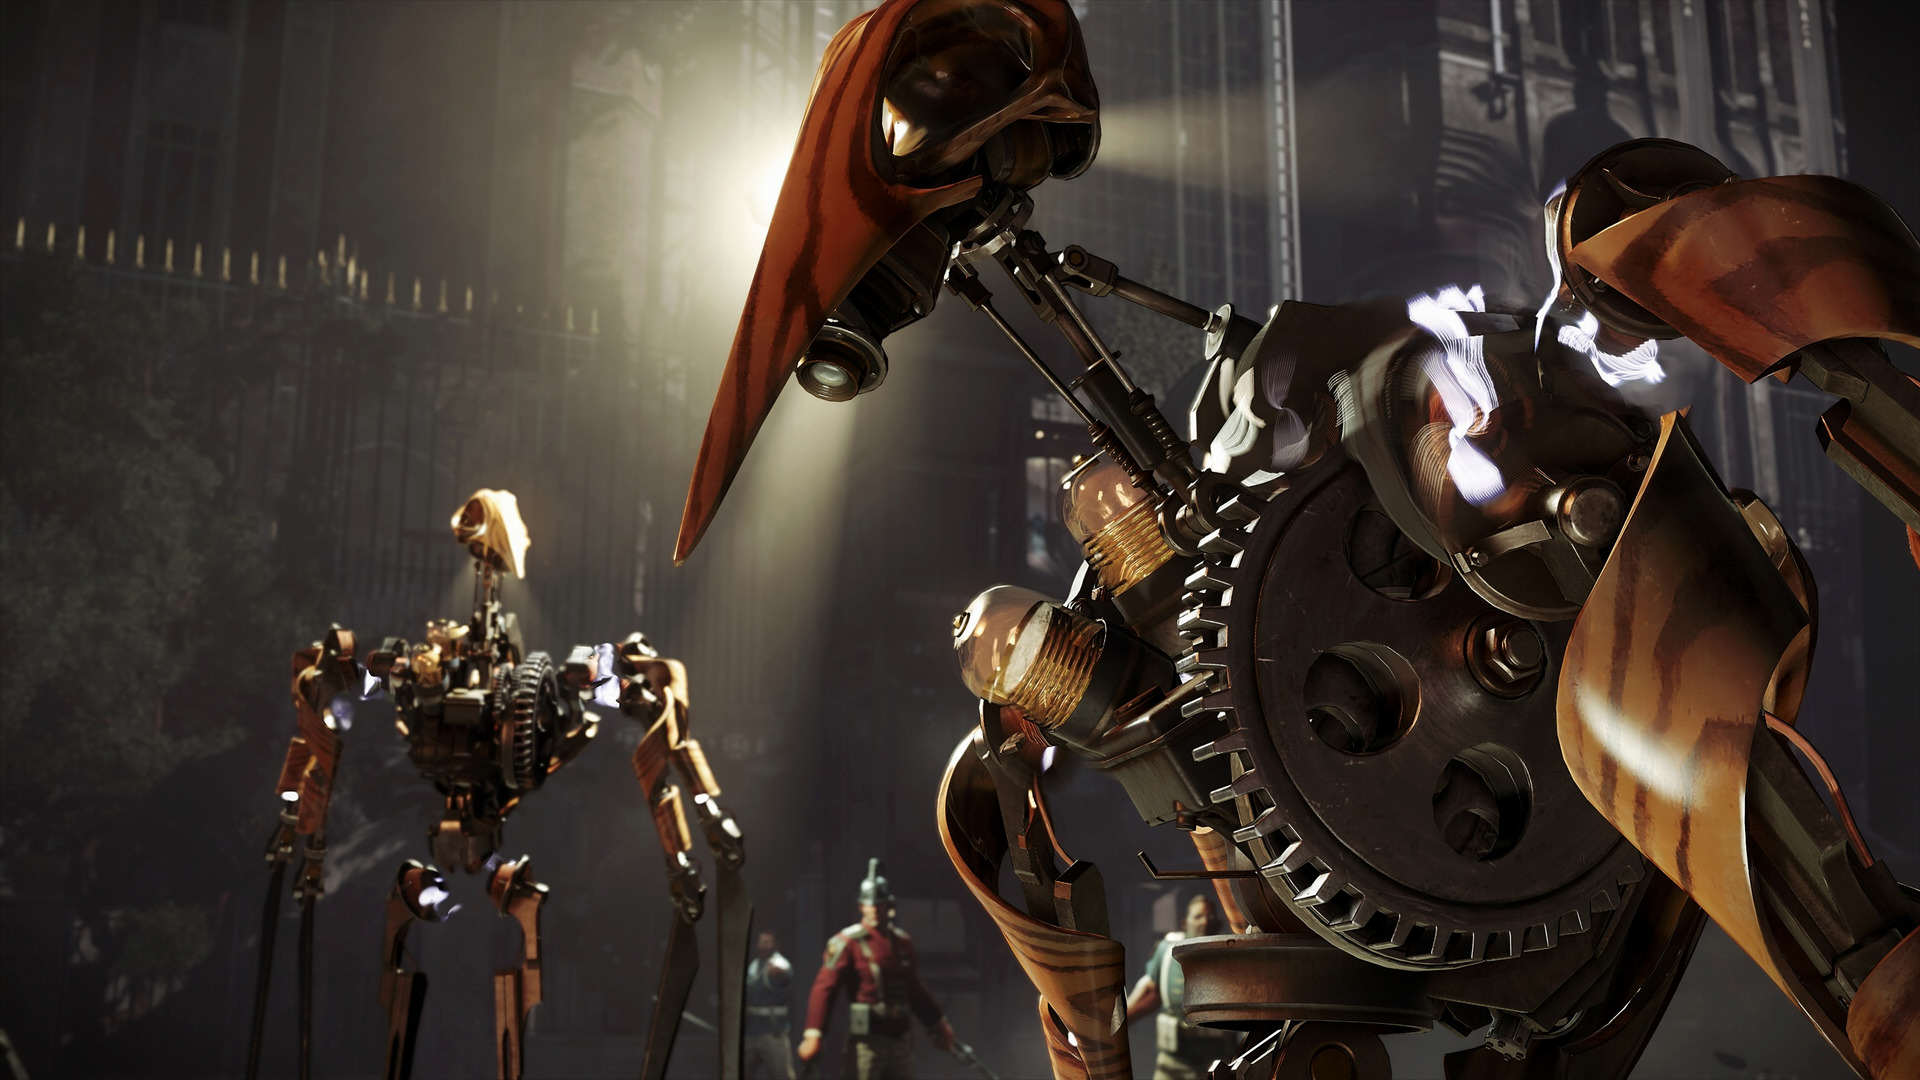 hCvTOr6 Check Out These Gorgeous New Dishonored 2 Screens